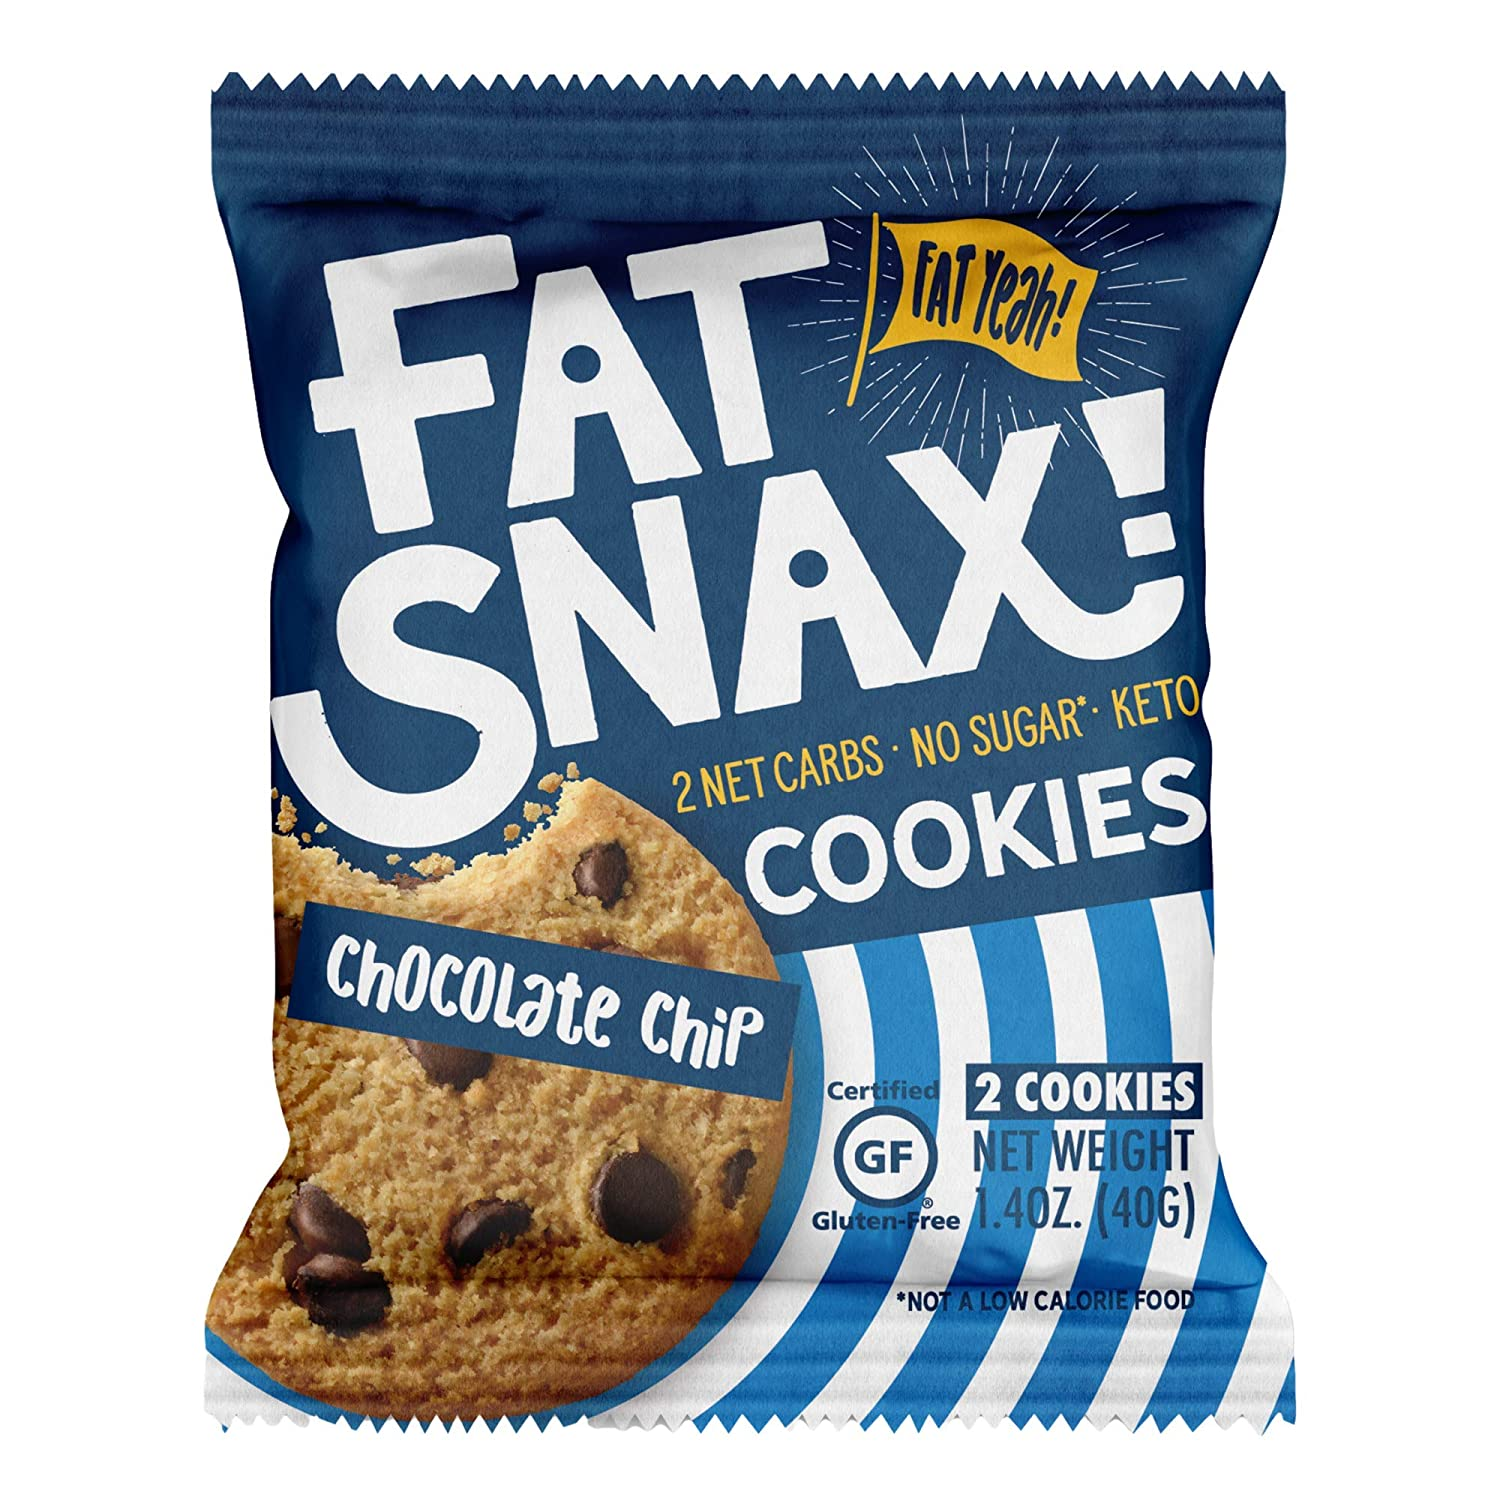 Fat Snax Keto Cookies - Low Carb, Keto, and Sugar-Free (Chocolate Chip, 12-pack (24 cookies)) - Keto-Friendly & Gluten-Free Snack Foods